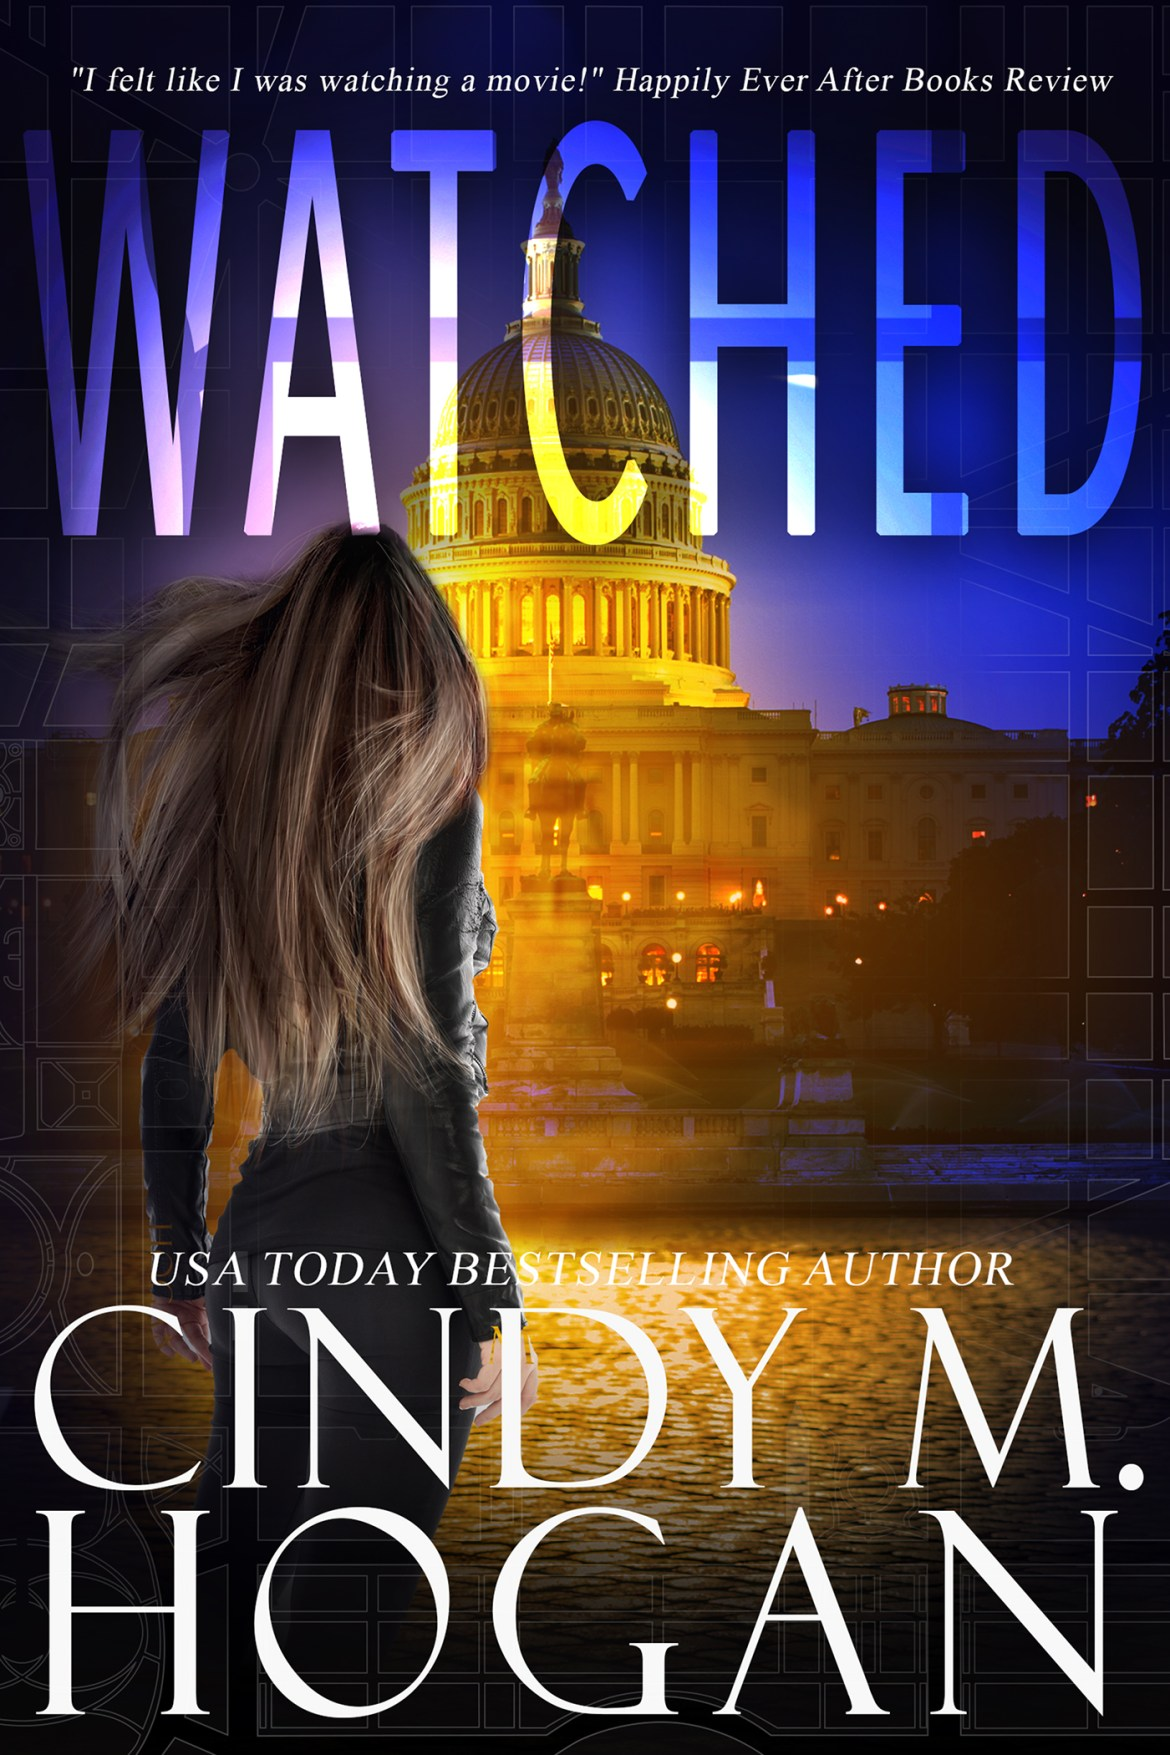 Watched by Cindy M. Hogan